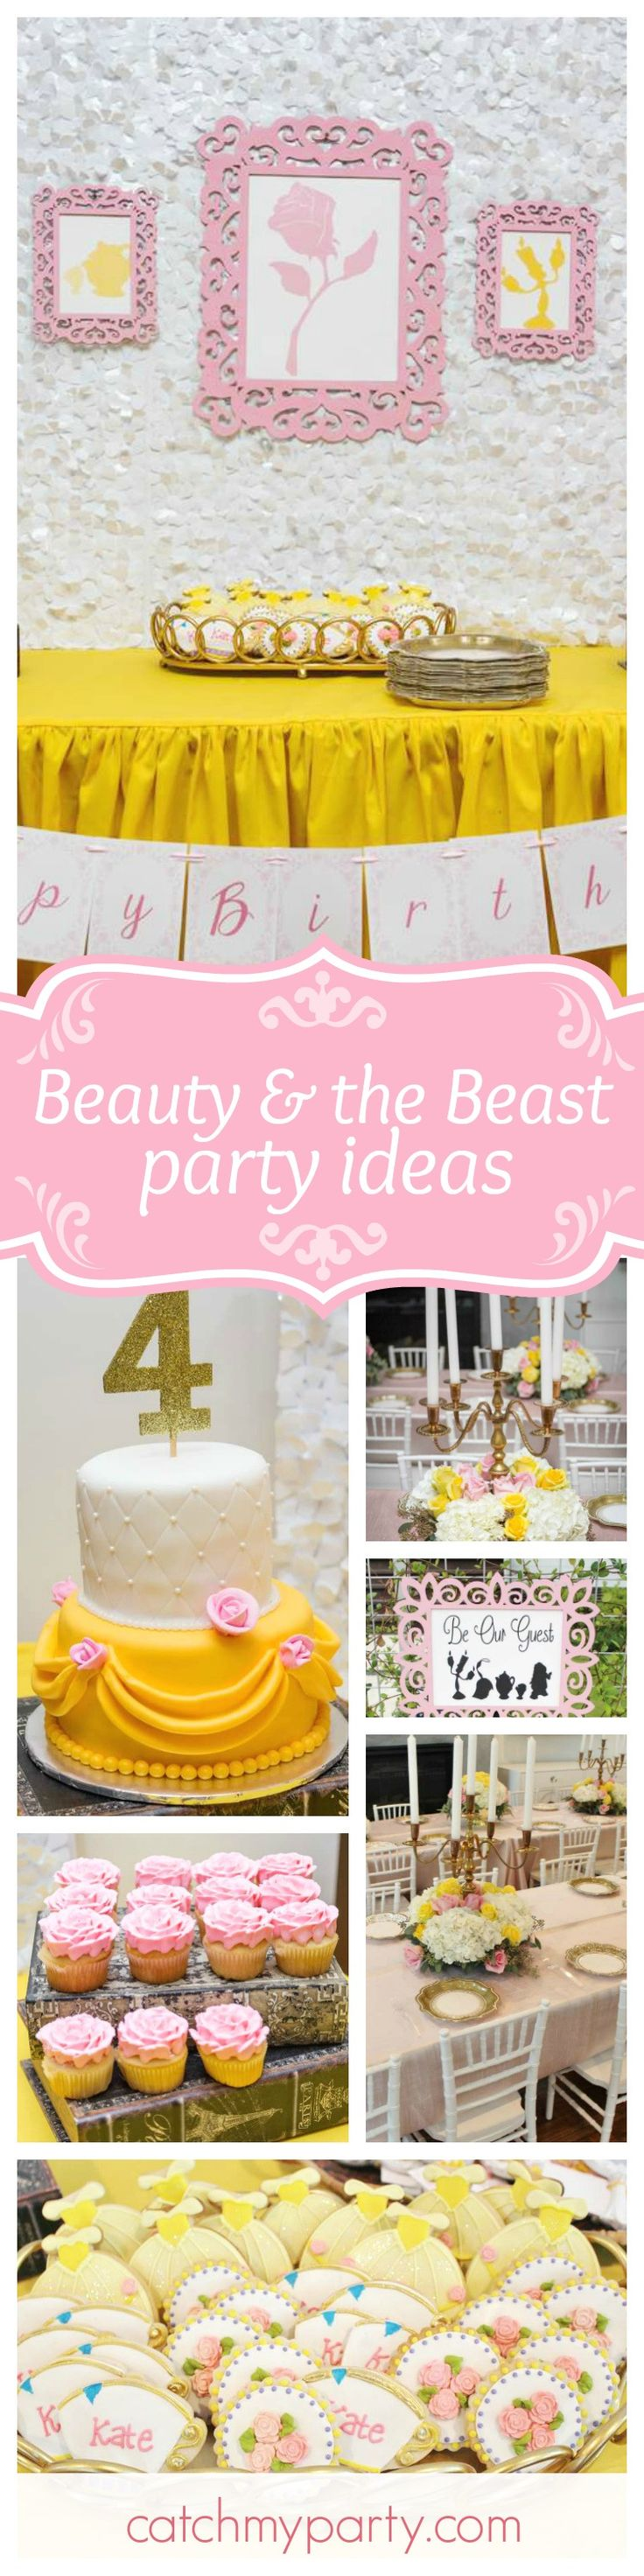 Take a look at this gorgeous Beauty & the Beast party. Wow! The Belle ballgown inspired cake is fabulous! See more party ideas and share yours at CatchMyParty.com